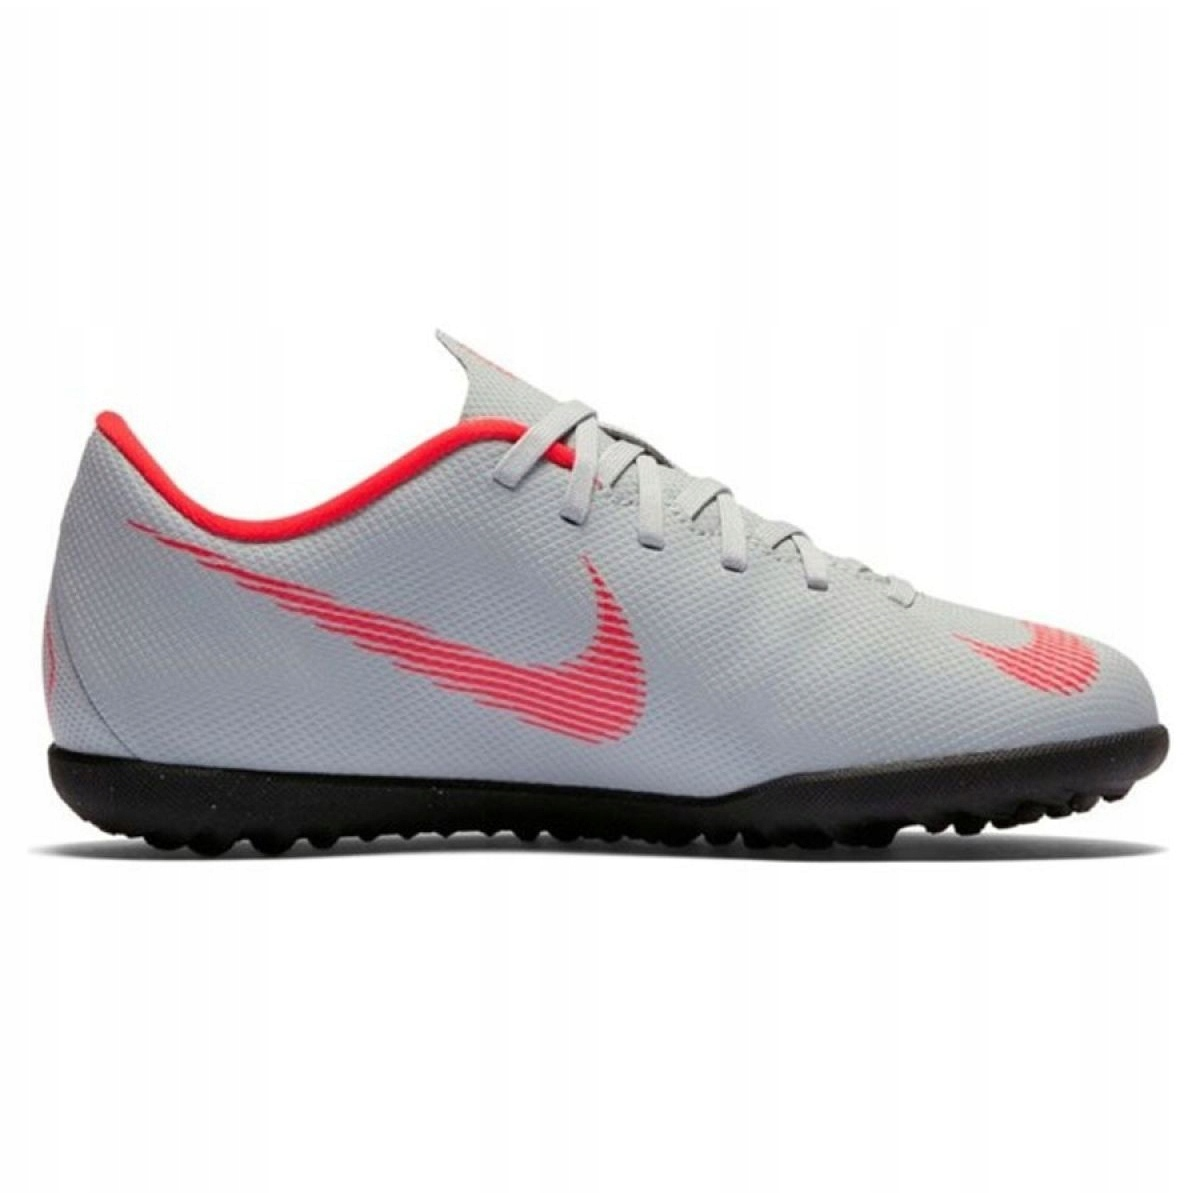 huge discount 42205 6d0cf Nike Mercurial VaporX 12 club football shoes Tf Gs Jr AH7355-060